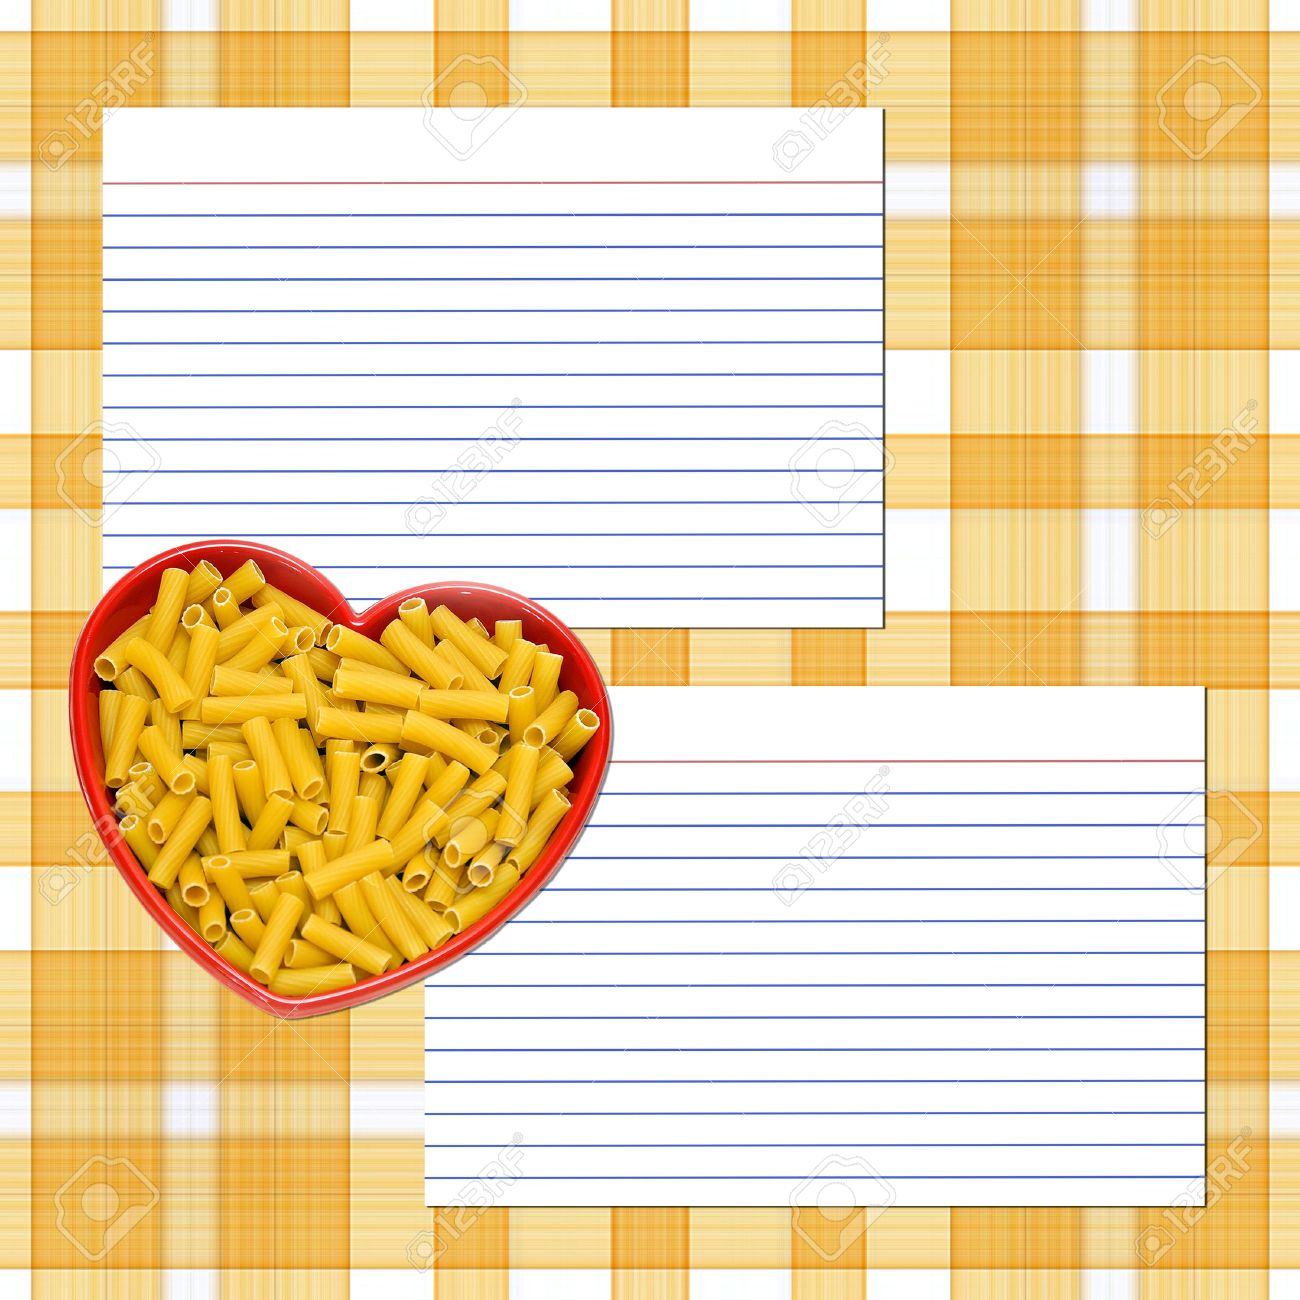 A Recipe Layout For Pasta Recipes - Recipe Cards, Heart Dish ...